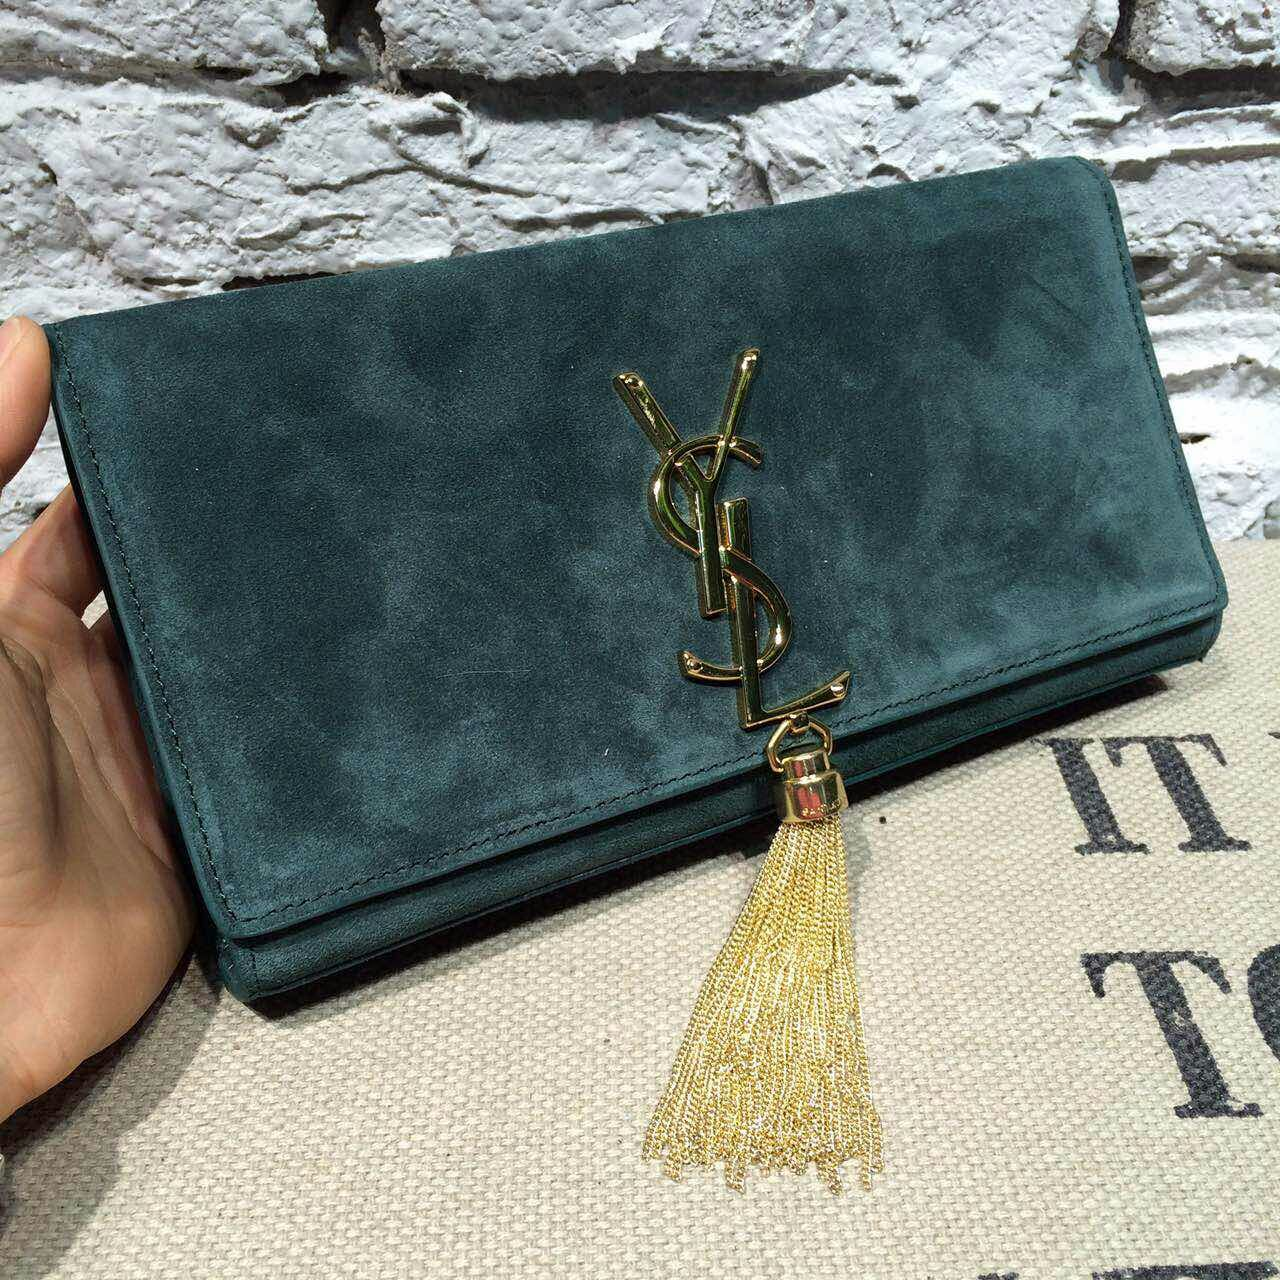 -2014 latest YSL Classic Monogramme Tassel Clutch suede leather green